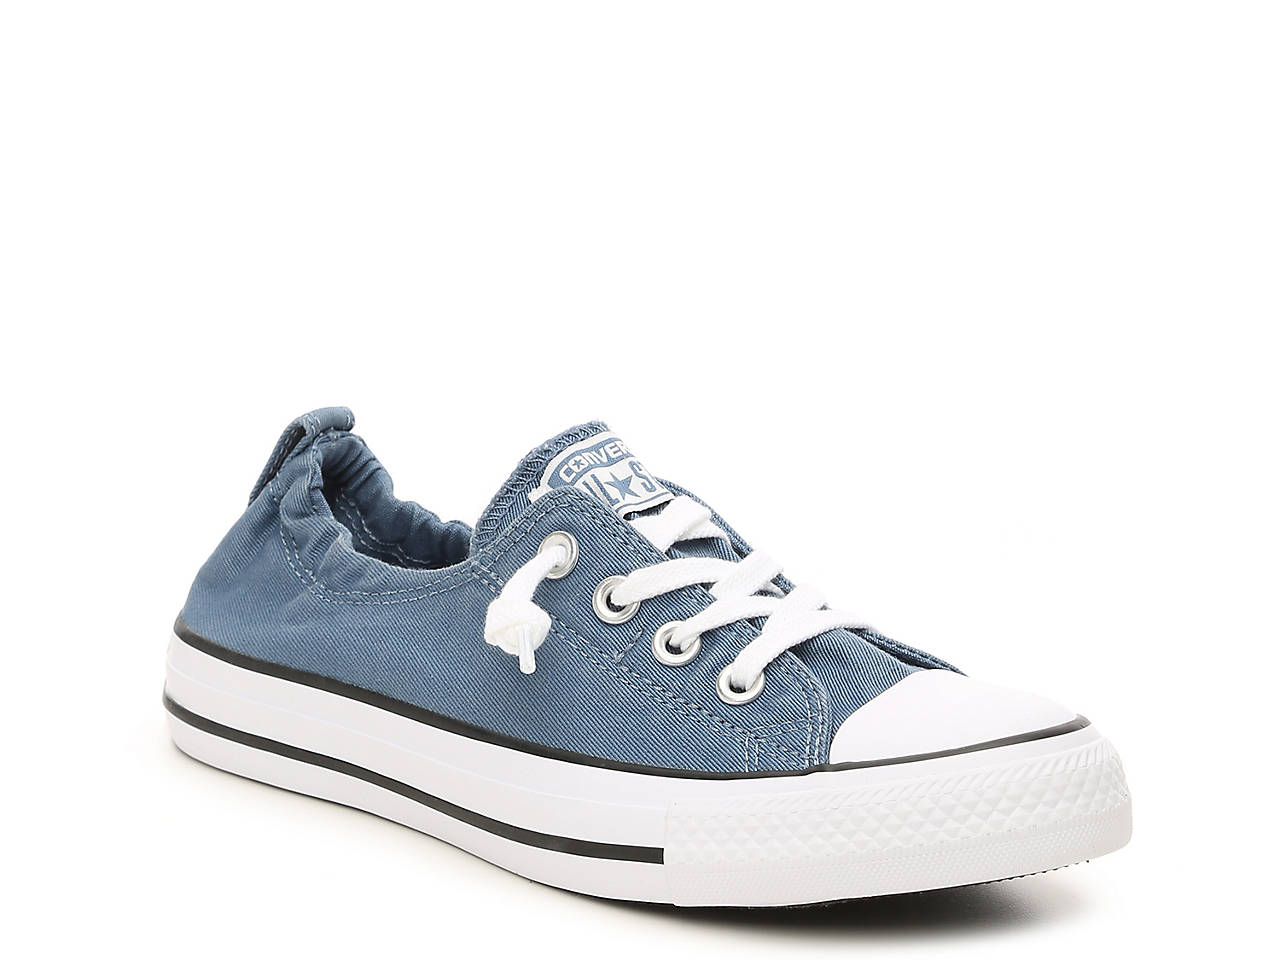 1bb6e1c82332 Converse. Chuck Taylor All Star Denim Shoreline Slip-On Sneaker - Women s